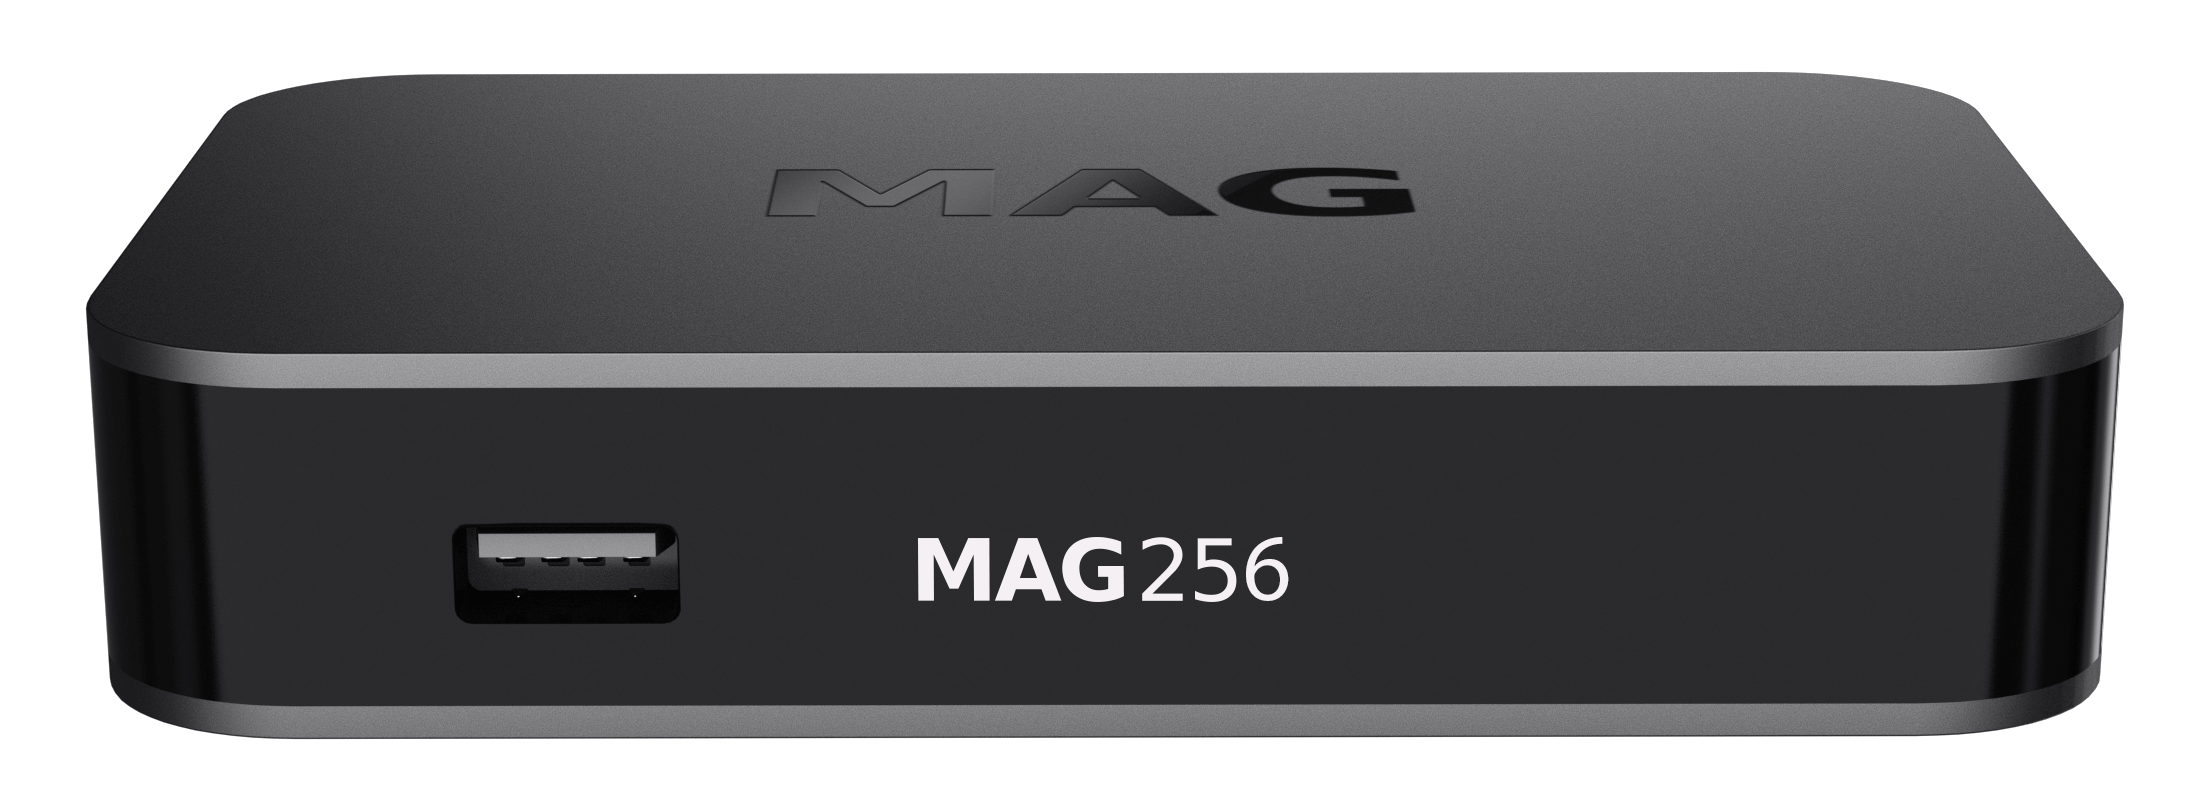 MAG 256 IPTV SET TOP BOX Multimedia player Internet TV IP Konsole USB HDTV 1080p